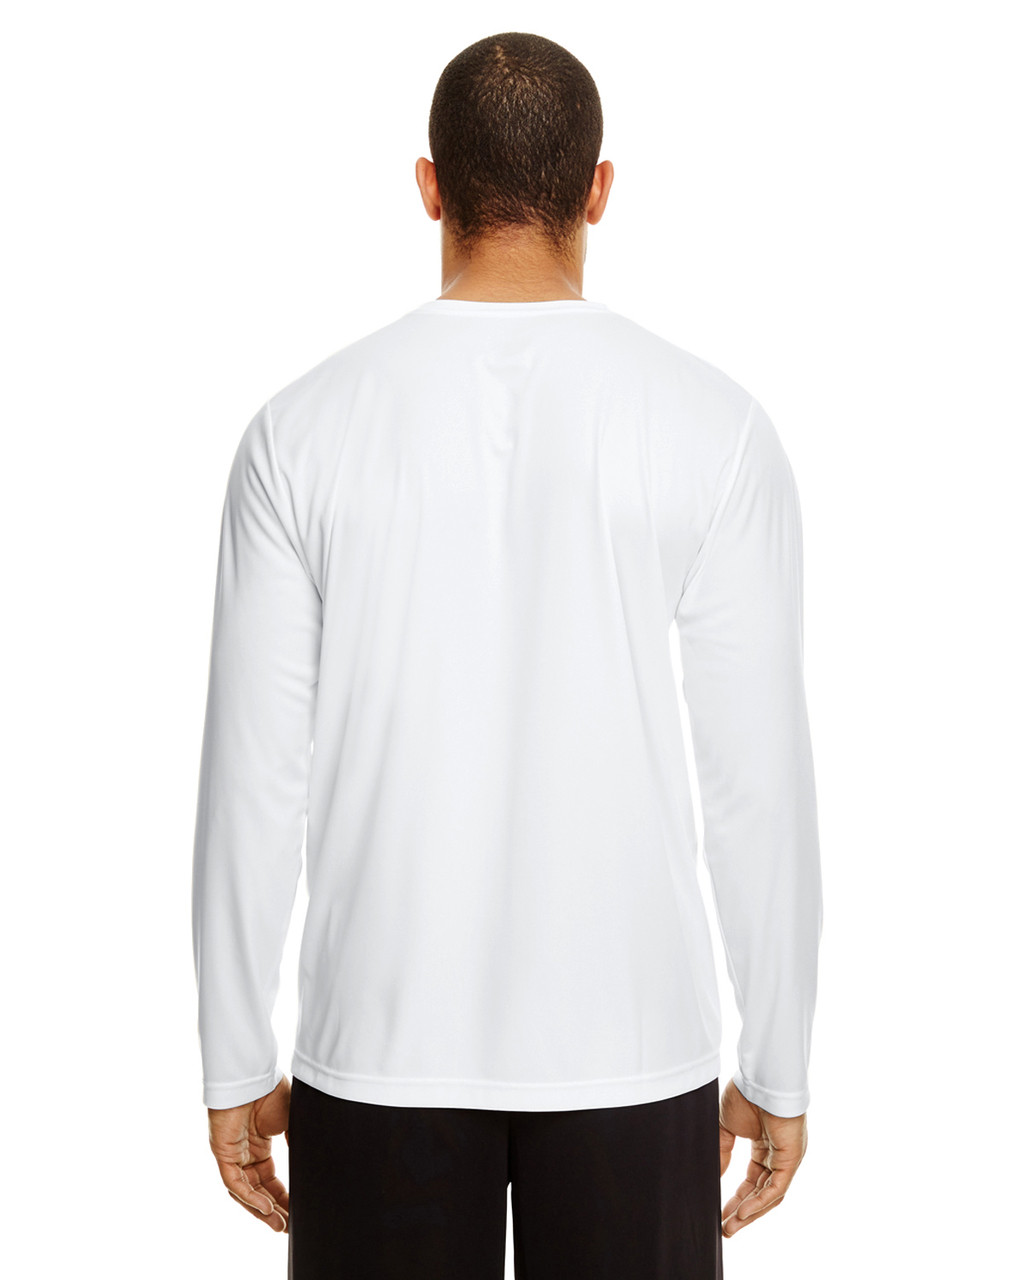 White, Back - TT11L Team 365 Men's Zone Performance Long Sleeve T-Shirt | BlankClothing.ca